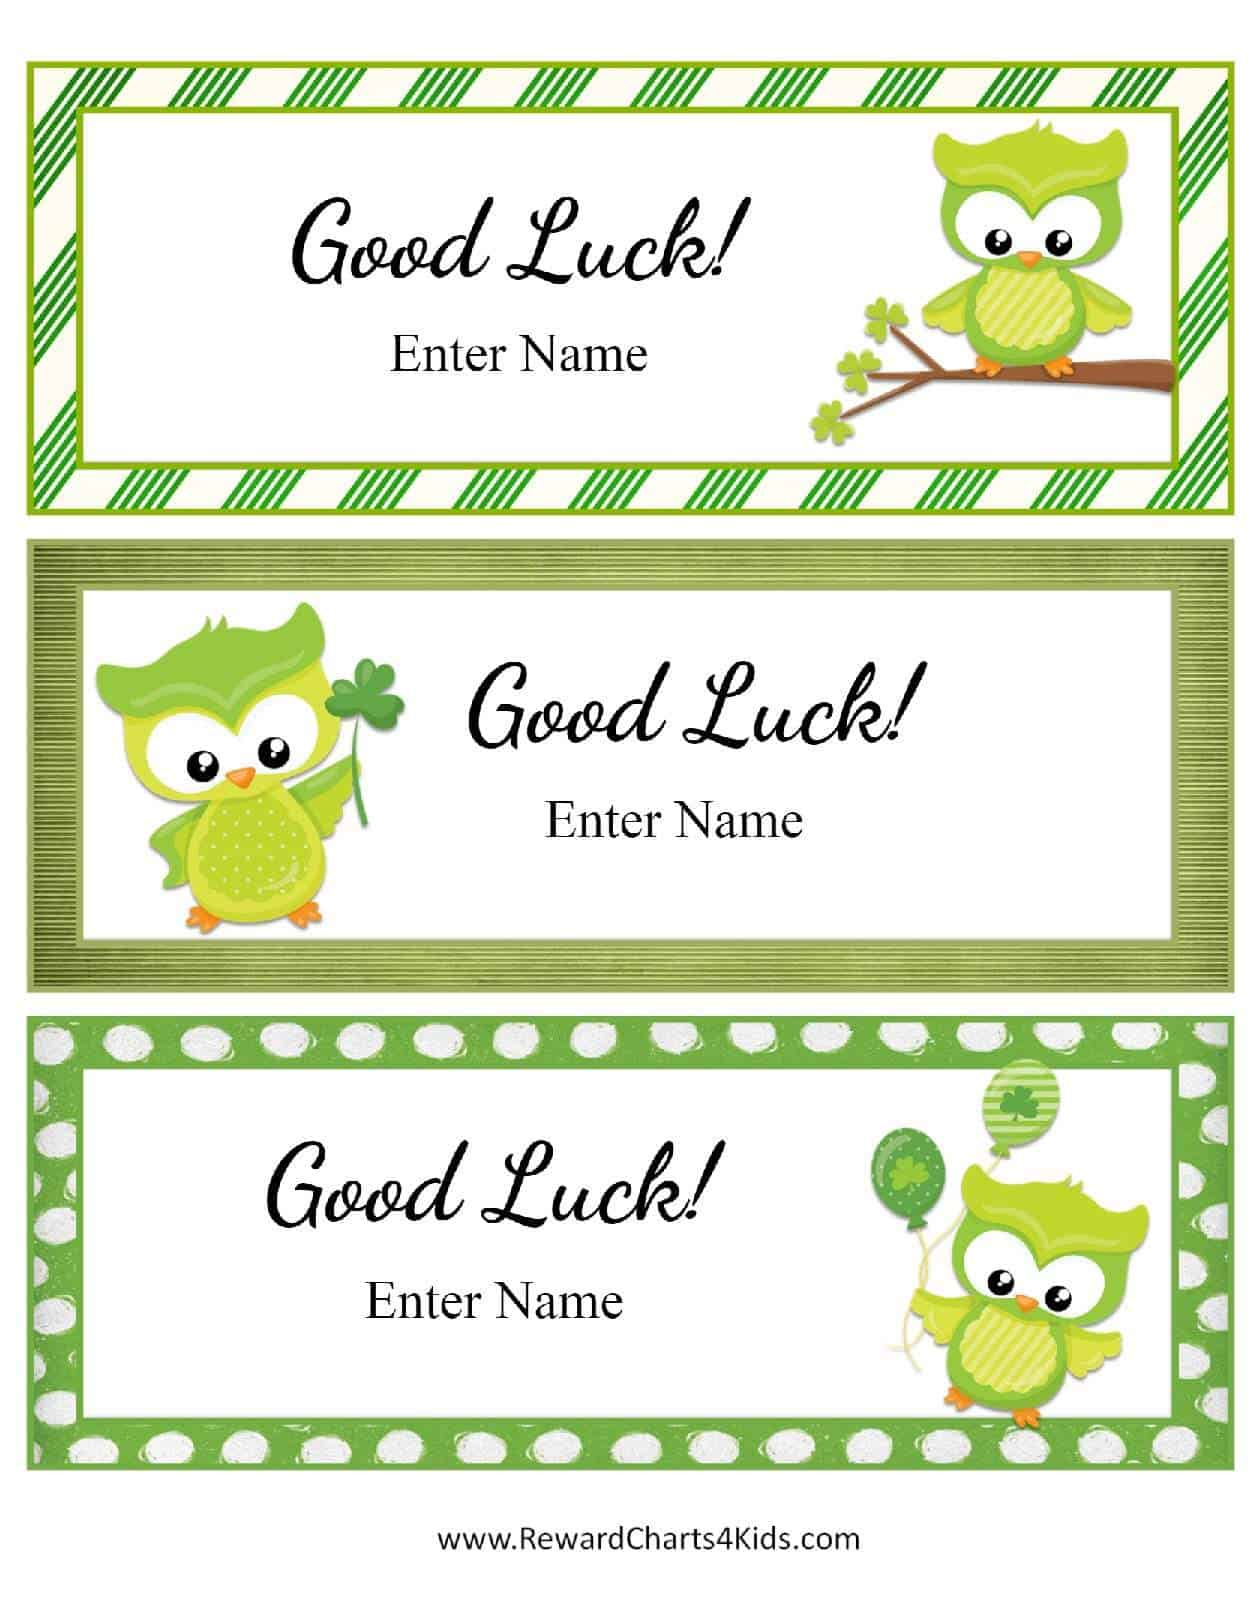 Similiar Good Luck Cards Printable For A Pageant Keywords